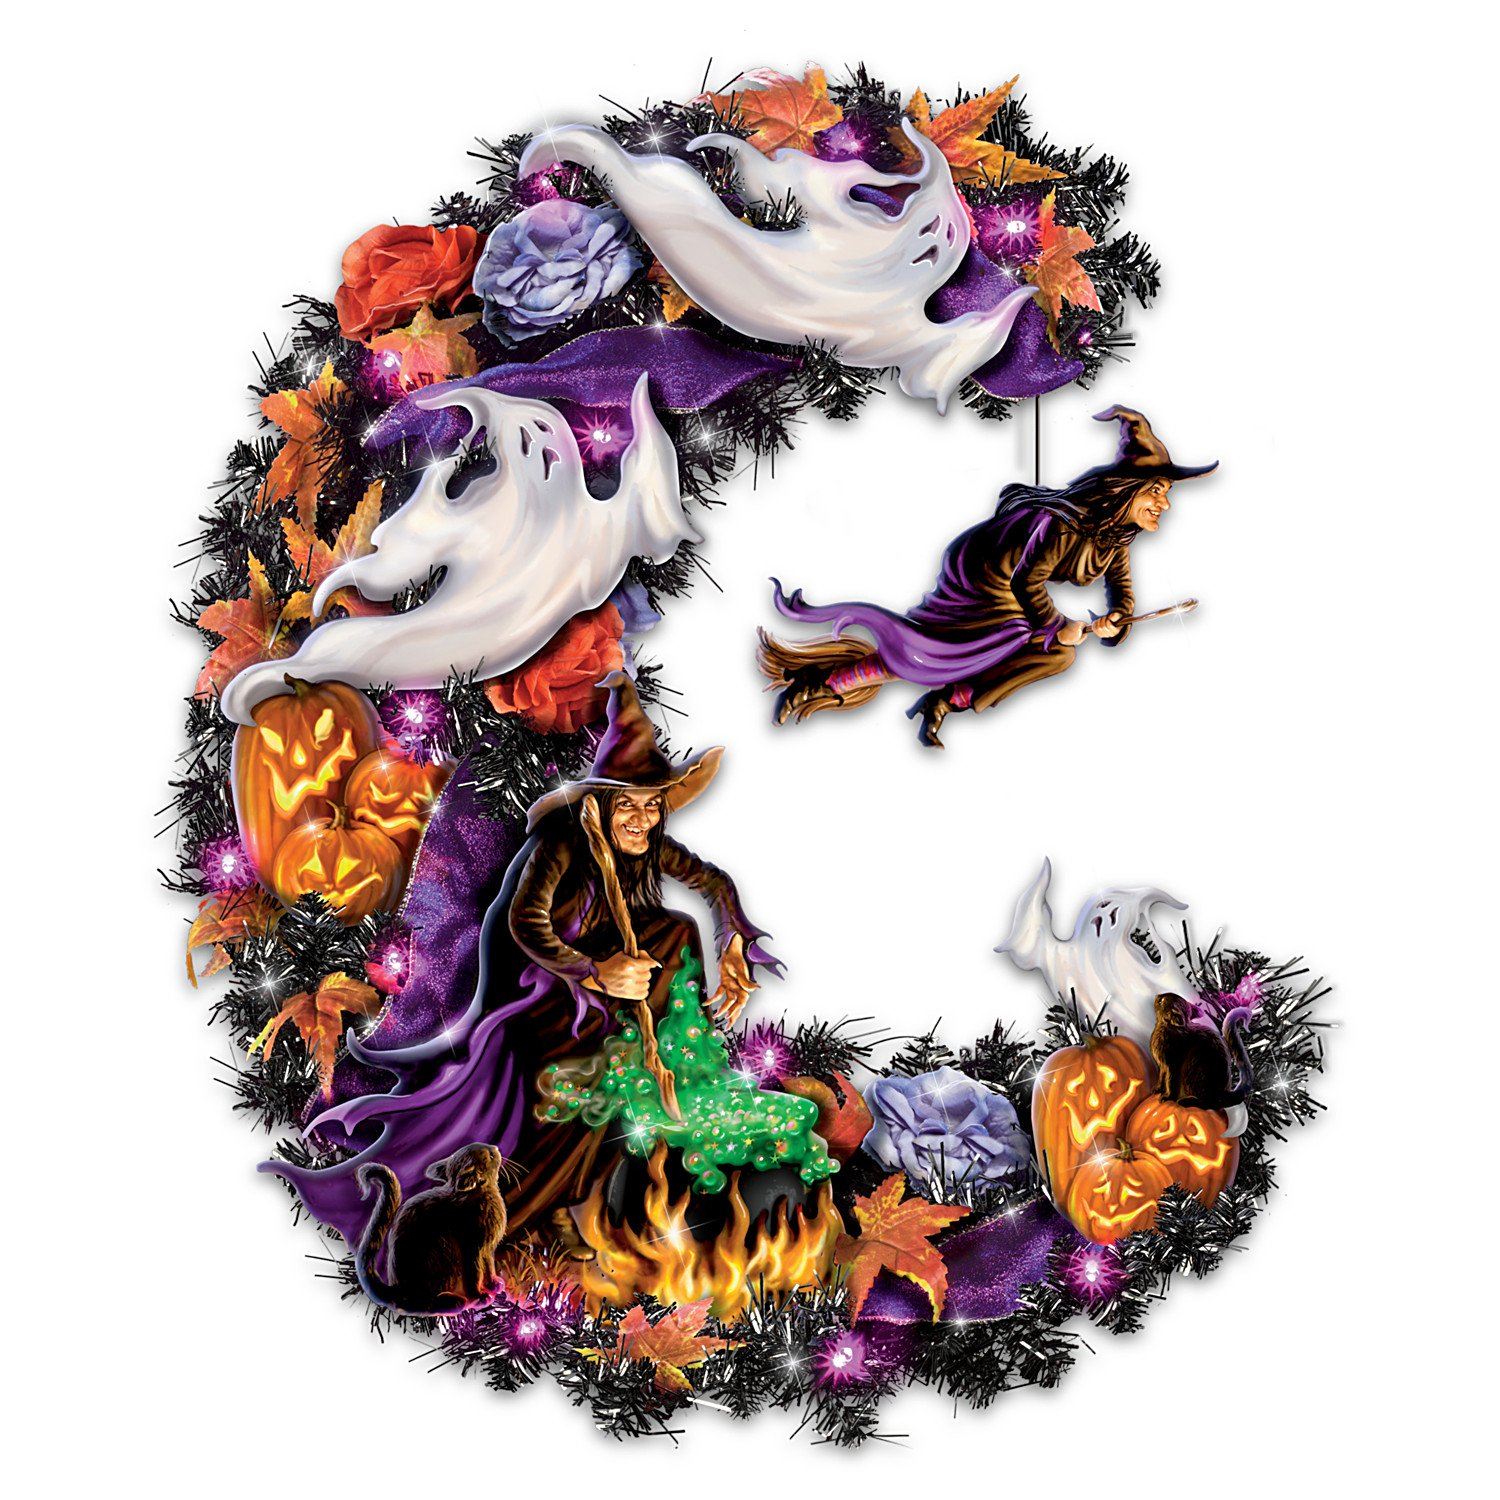 Best Witches Light Up Halloween Wreath by The Bradford Exchange 01-21155-001